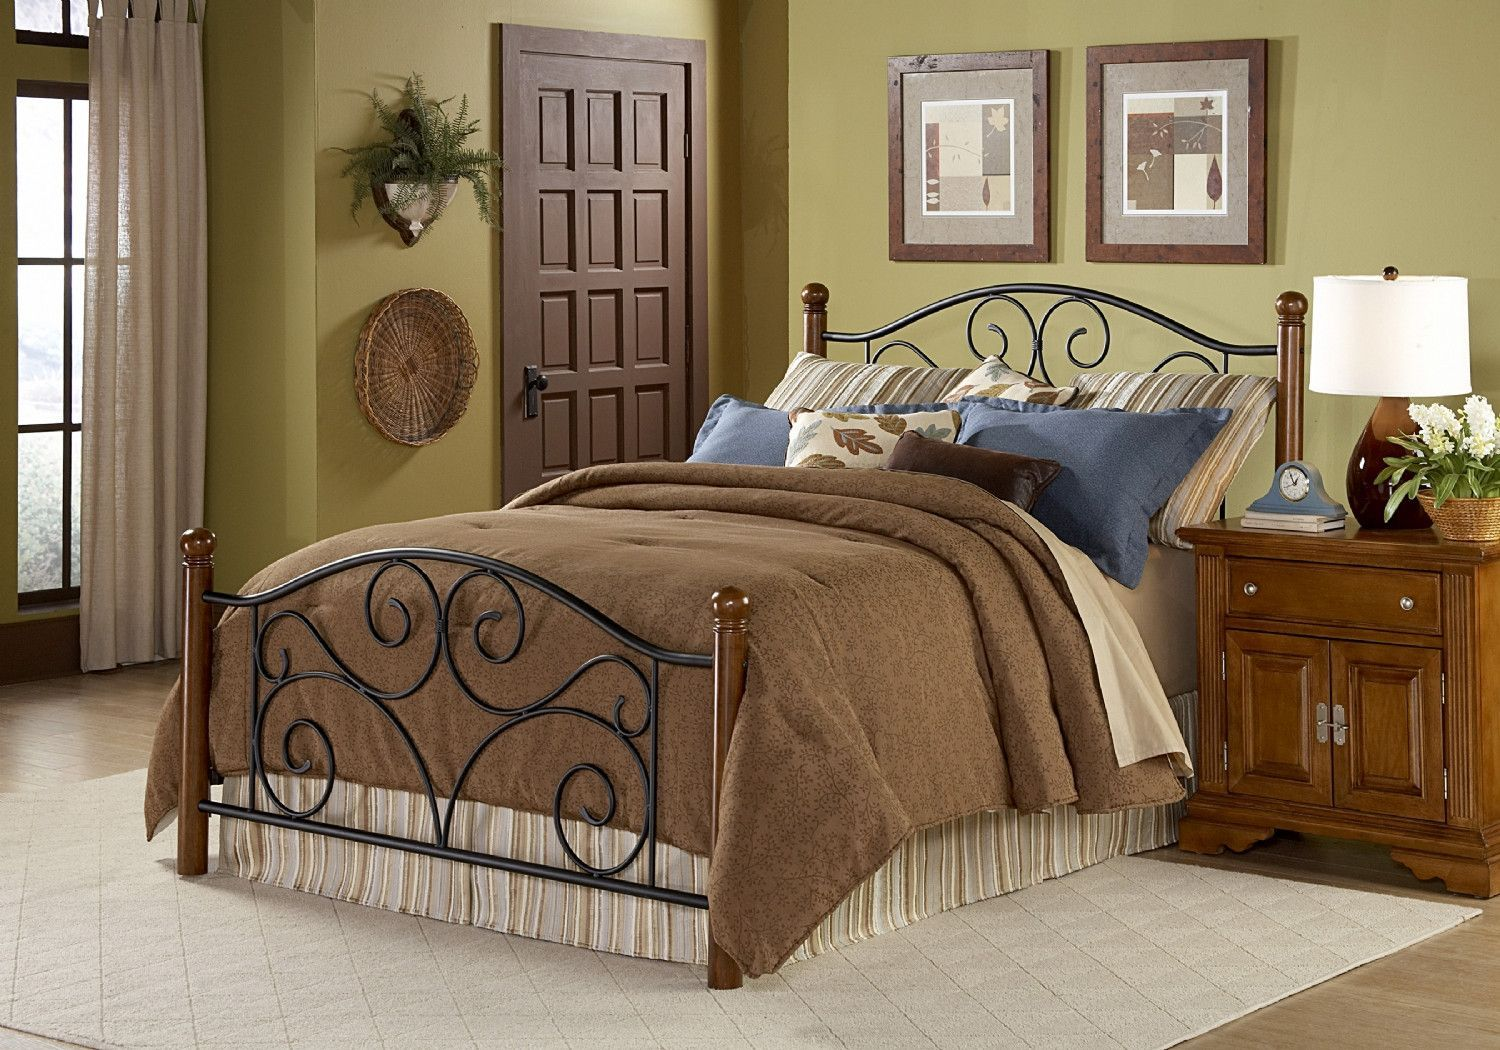 Doral Headboard | Products | Pinterest